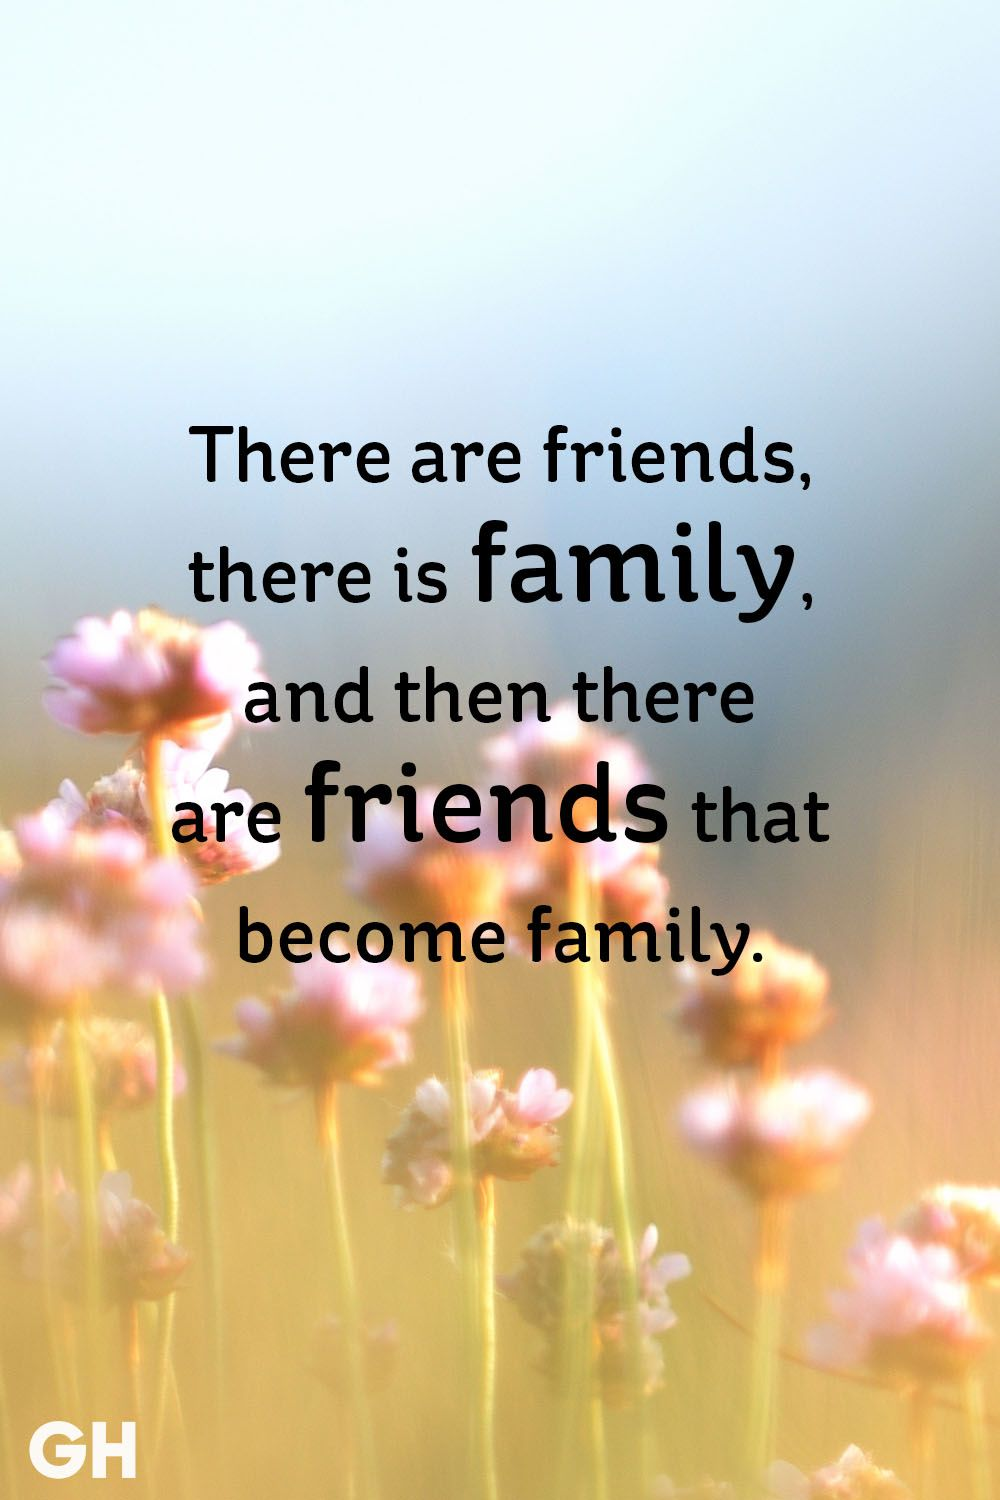 Friends Are Family Quotes 25 Short Friendship Quotes for Best Friends   Cute Sayings About  Friends Are Family Quotes